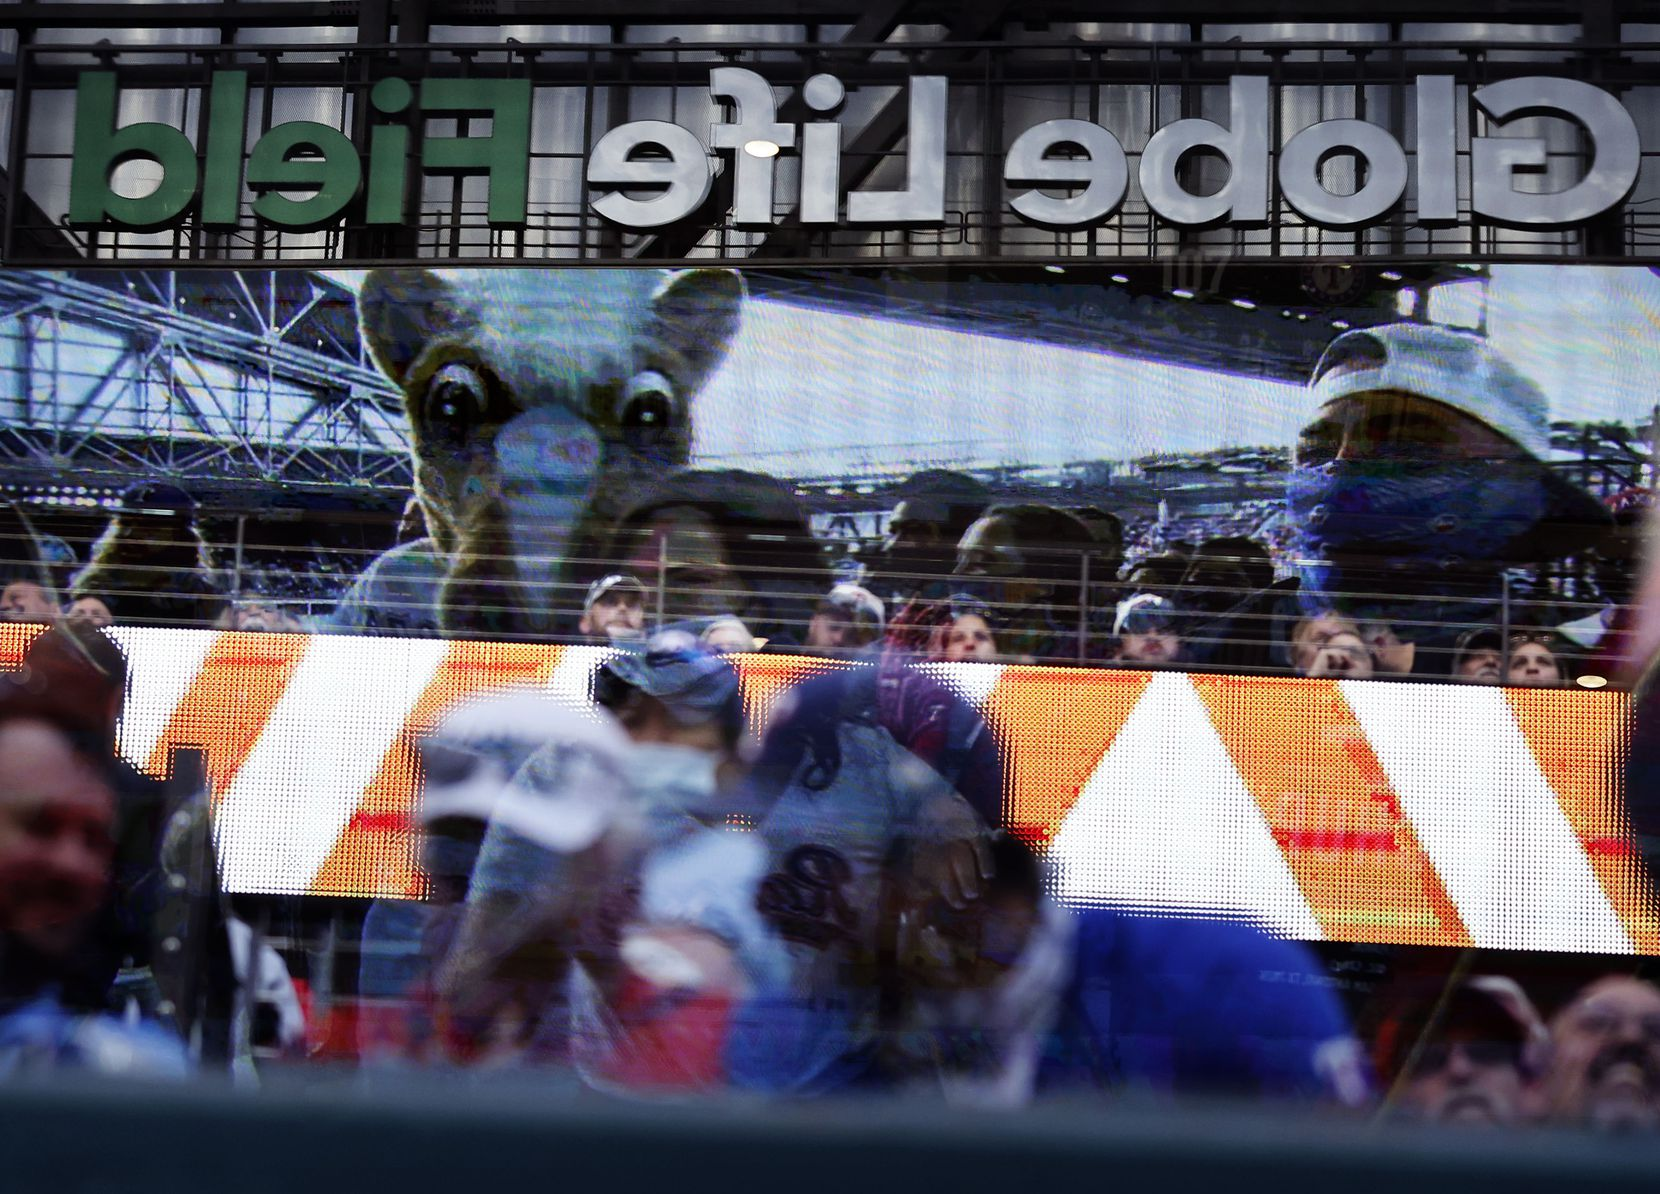 A reflection of the video board and stadium are seen in the plexiglass above the Toronto Blue Jays dugout at Globe Life Field in Arlington, Monday, April 5, 2021. The Texas Rangers were facing the Toronto Blue Jays in their home opener. The Rangers lost, 6-4. (Tom Fox/The Dallas Morning News)